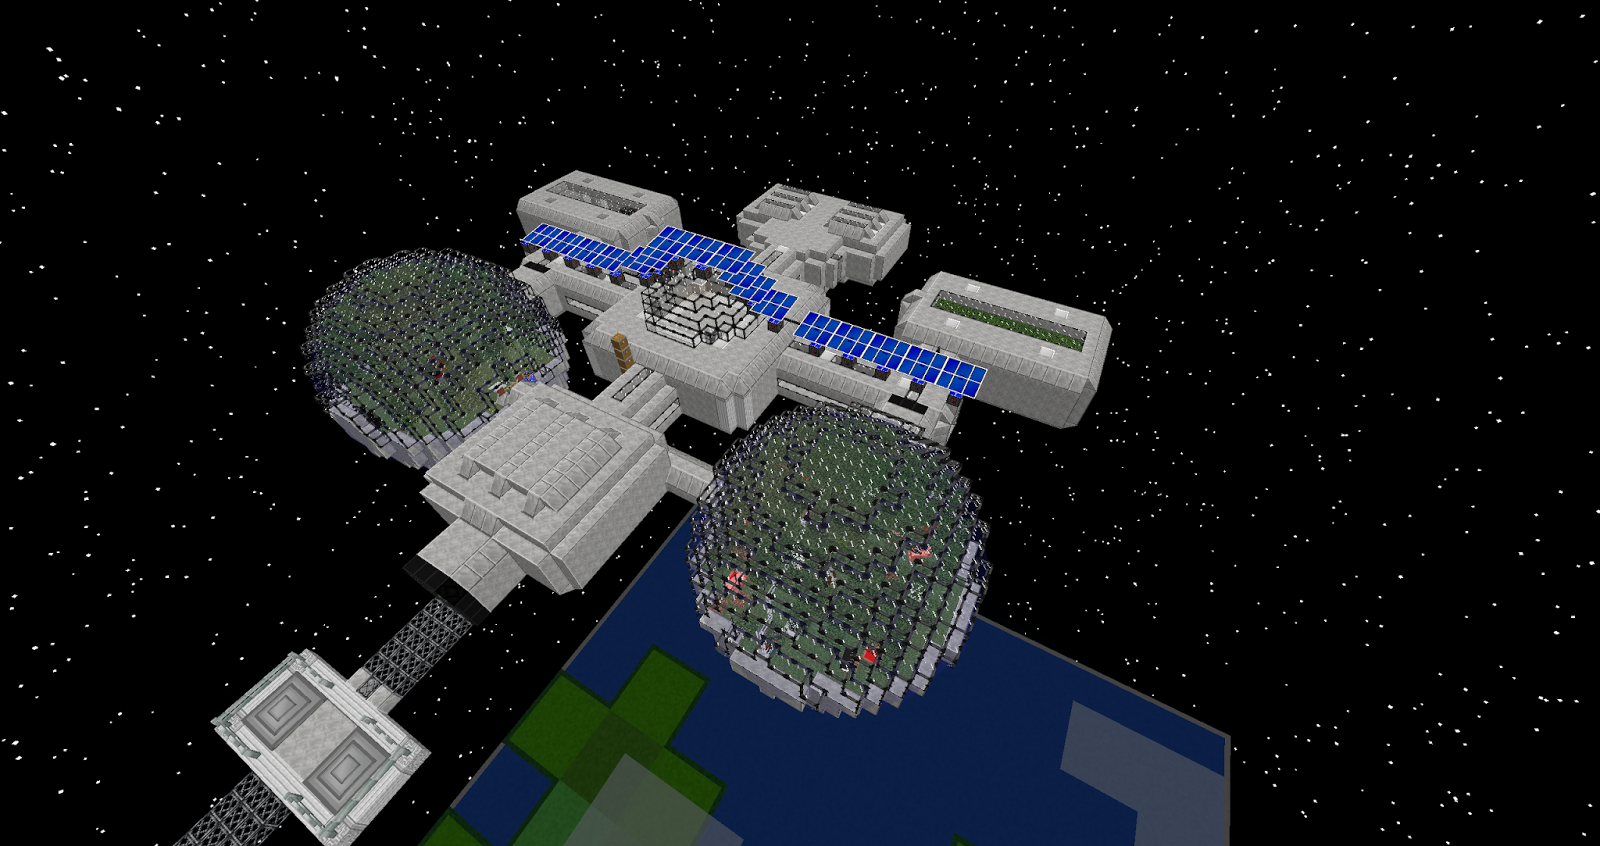 galacticraft space station - photo #11